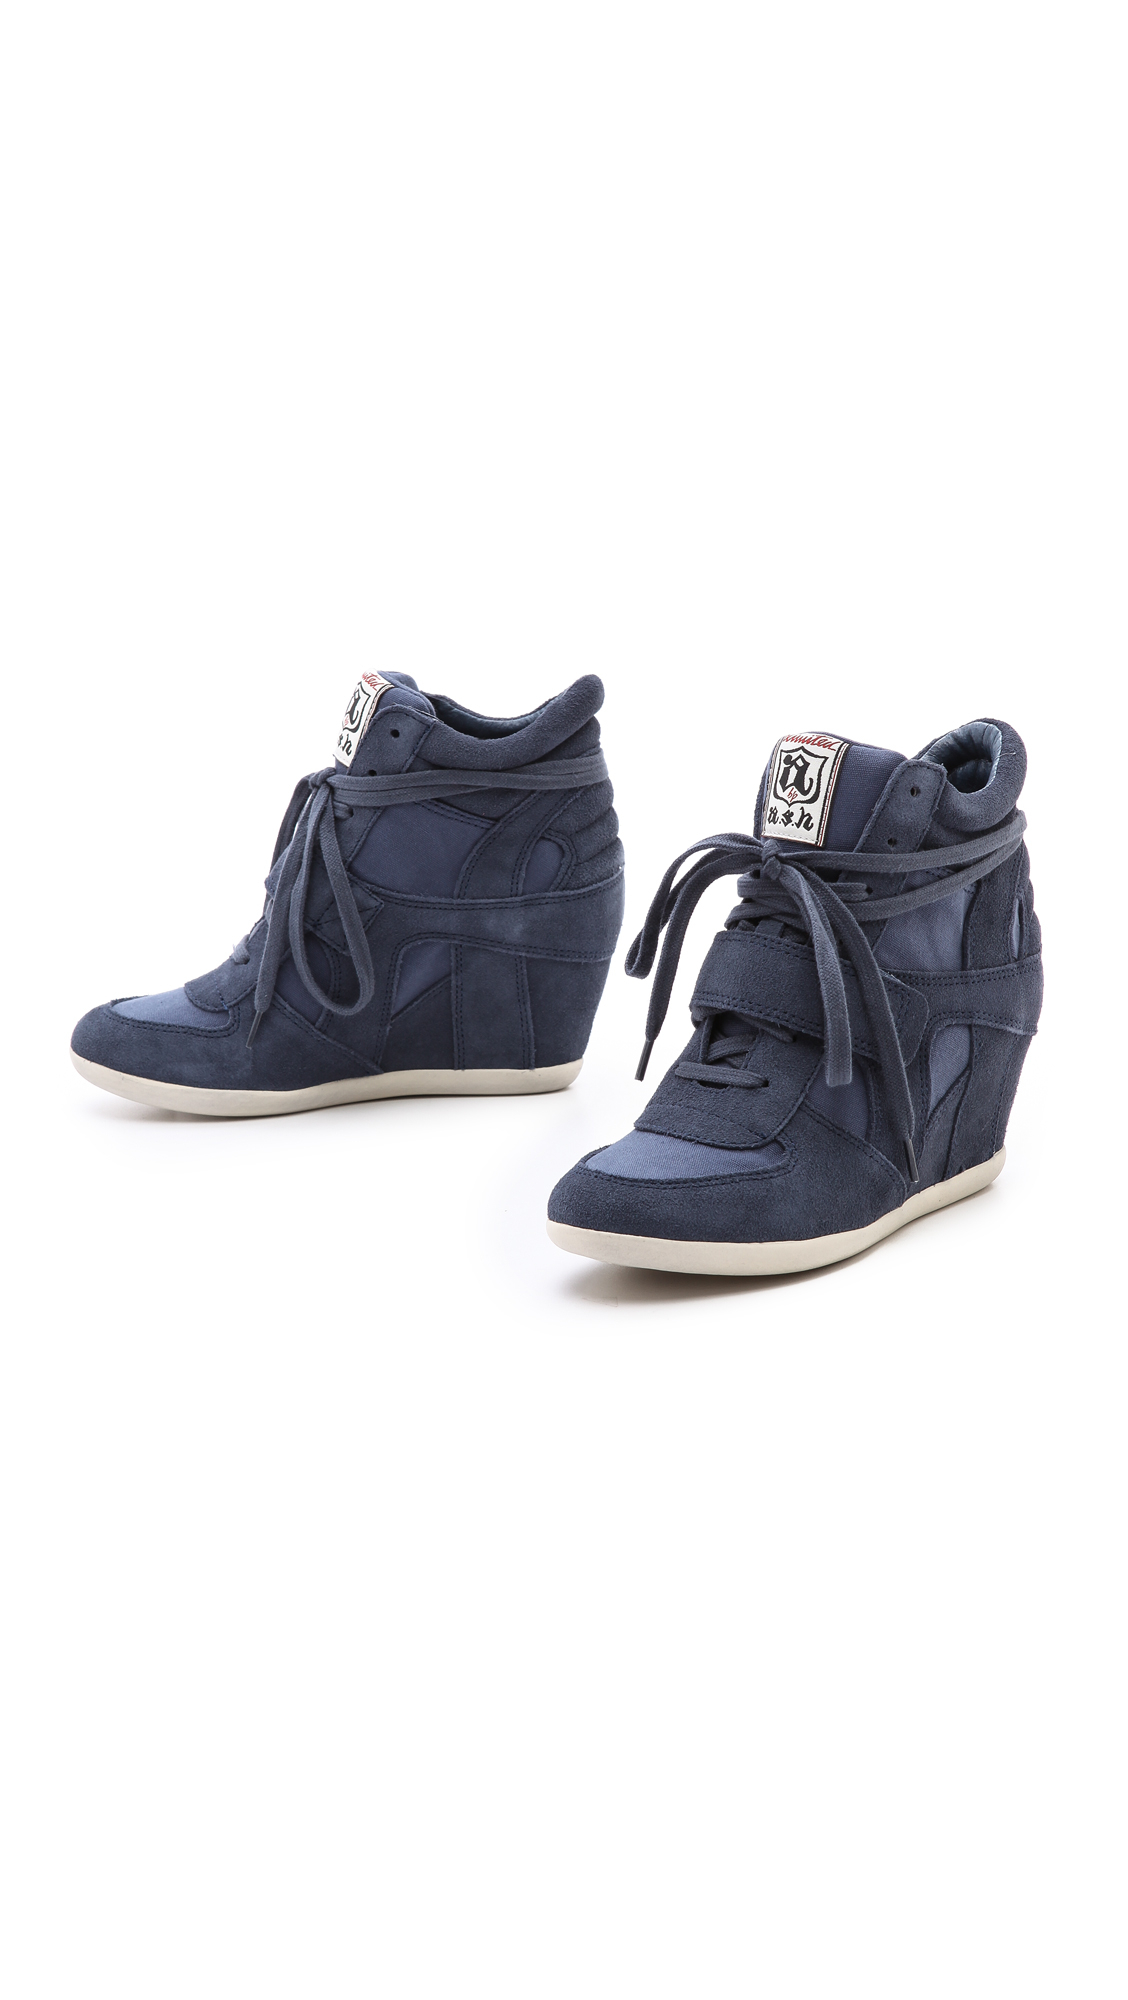 lyst ash bowie wedge sneakers in blue